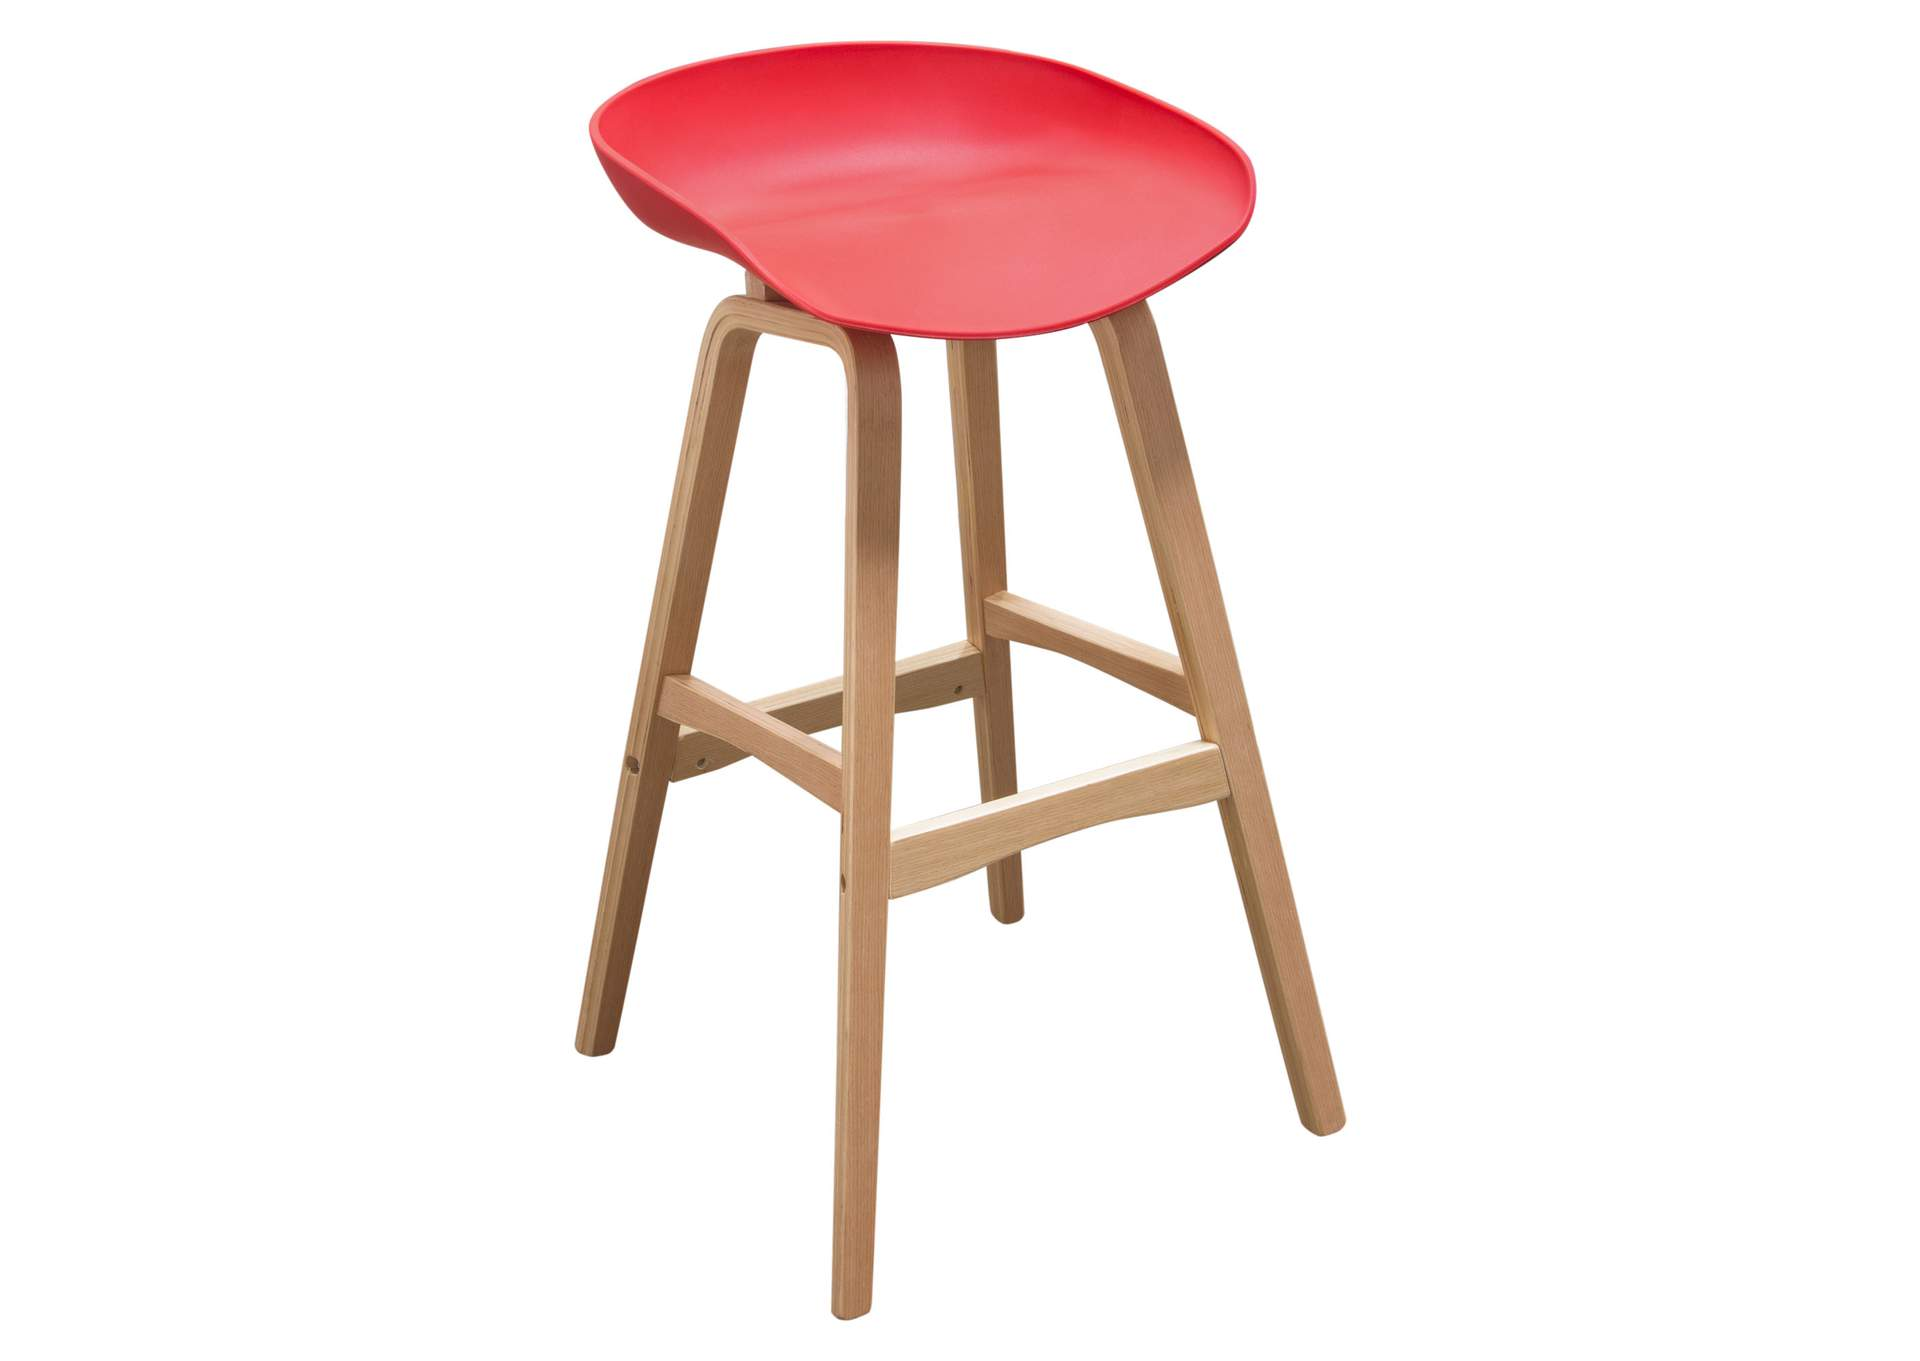 Brentwood Red Bar Height Stool w/Molded Bamboo Frame,Diamond Sofa